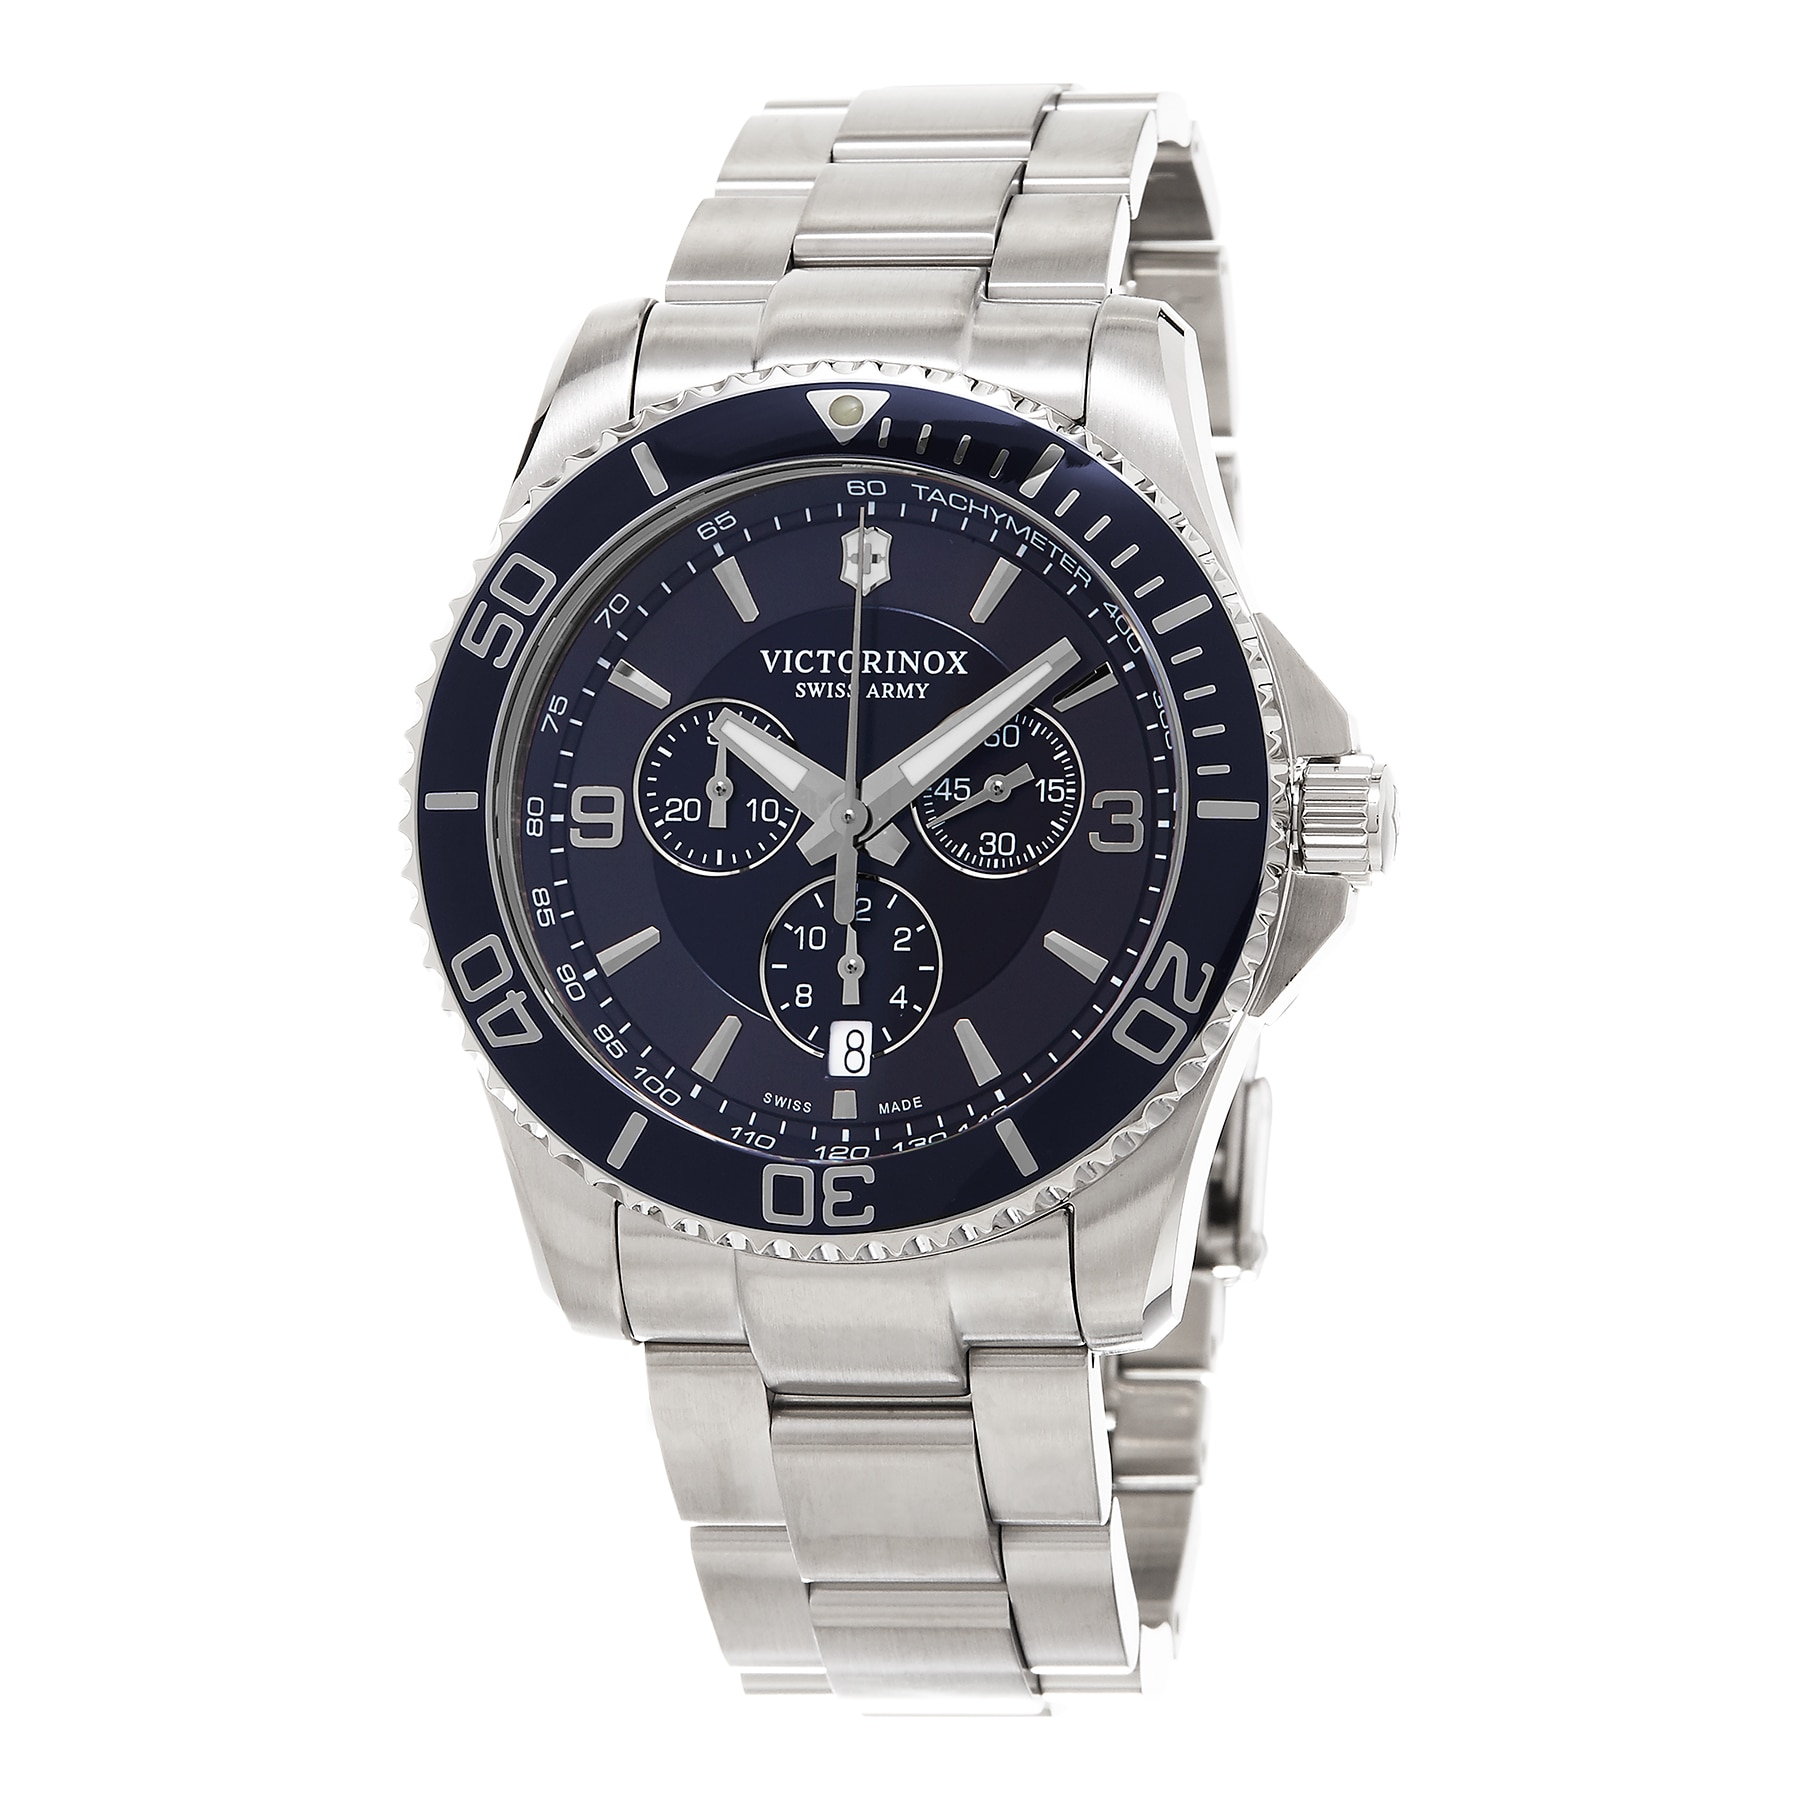 da58b6ea46ba Shop Victorinox Swiss Army Men s 241689  Maverick  Chronograph Stainless  Steel Watch - Free Shipping Today - Overstock - 10489699